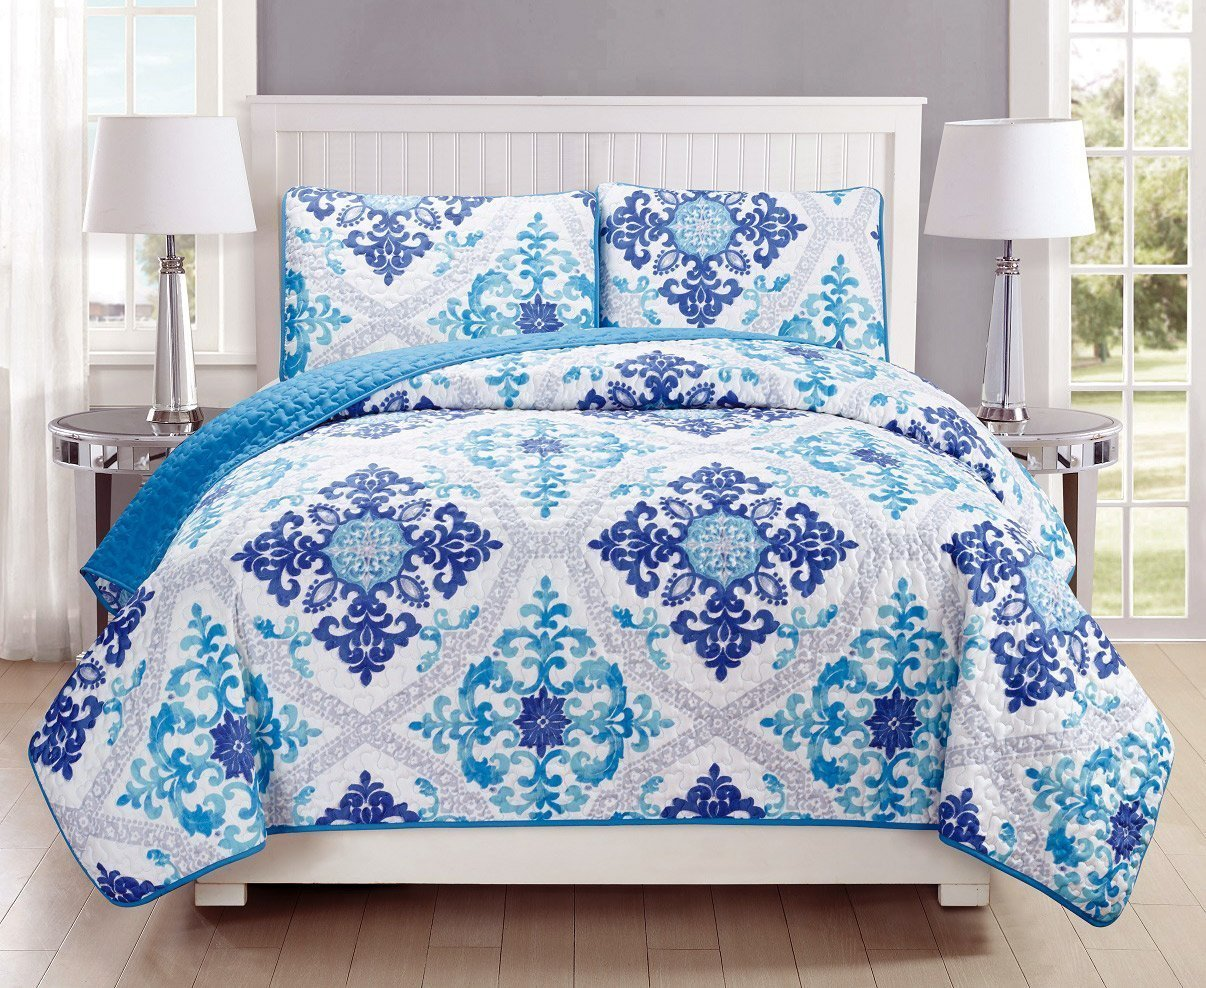 5-Piece Fine printed Chic Quilt Set Reversible Bedspread Coverlet FULL QUEEN SIZE Bed Cover Light Blue, Grey